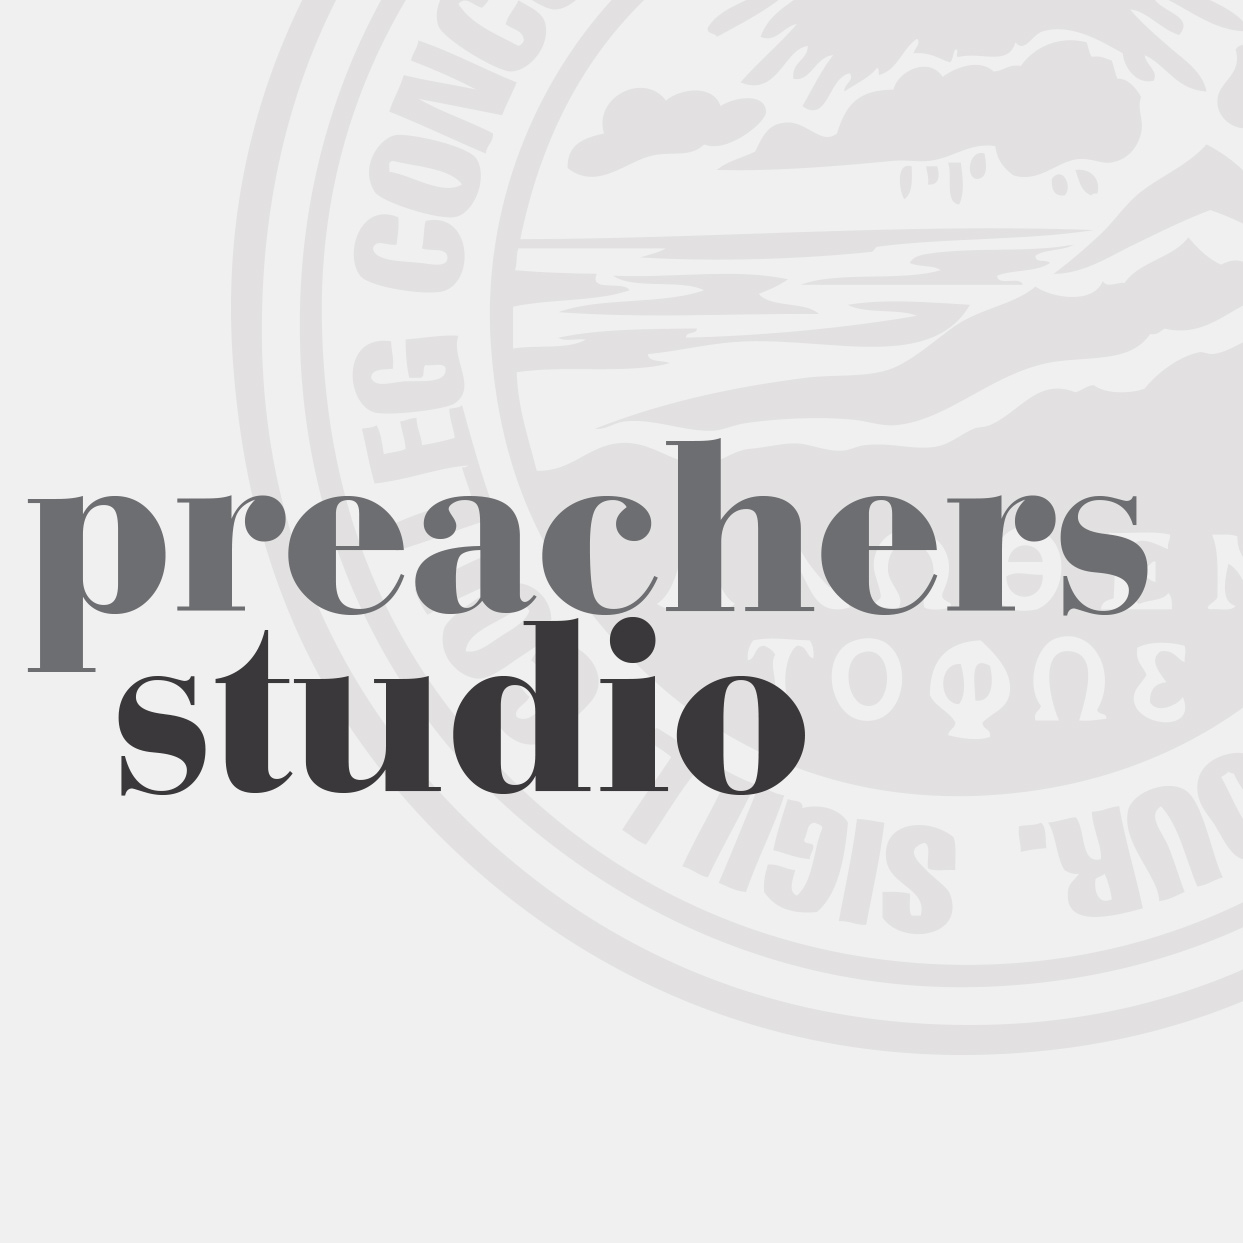 Preachers Studio: Jeff Gibbs